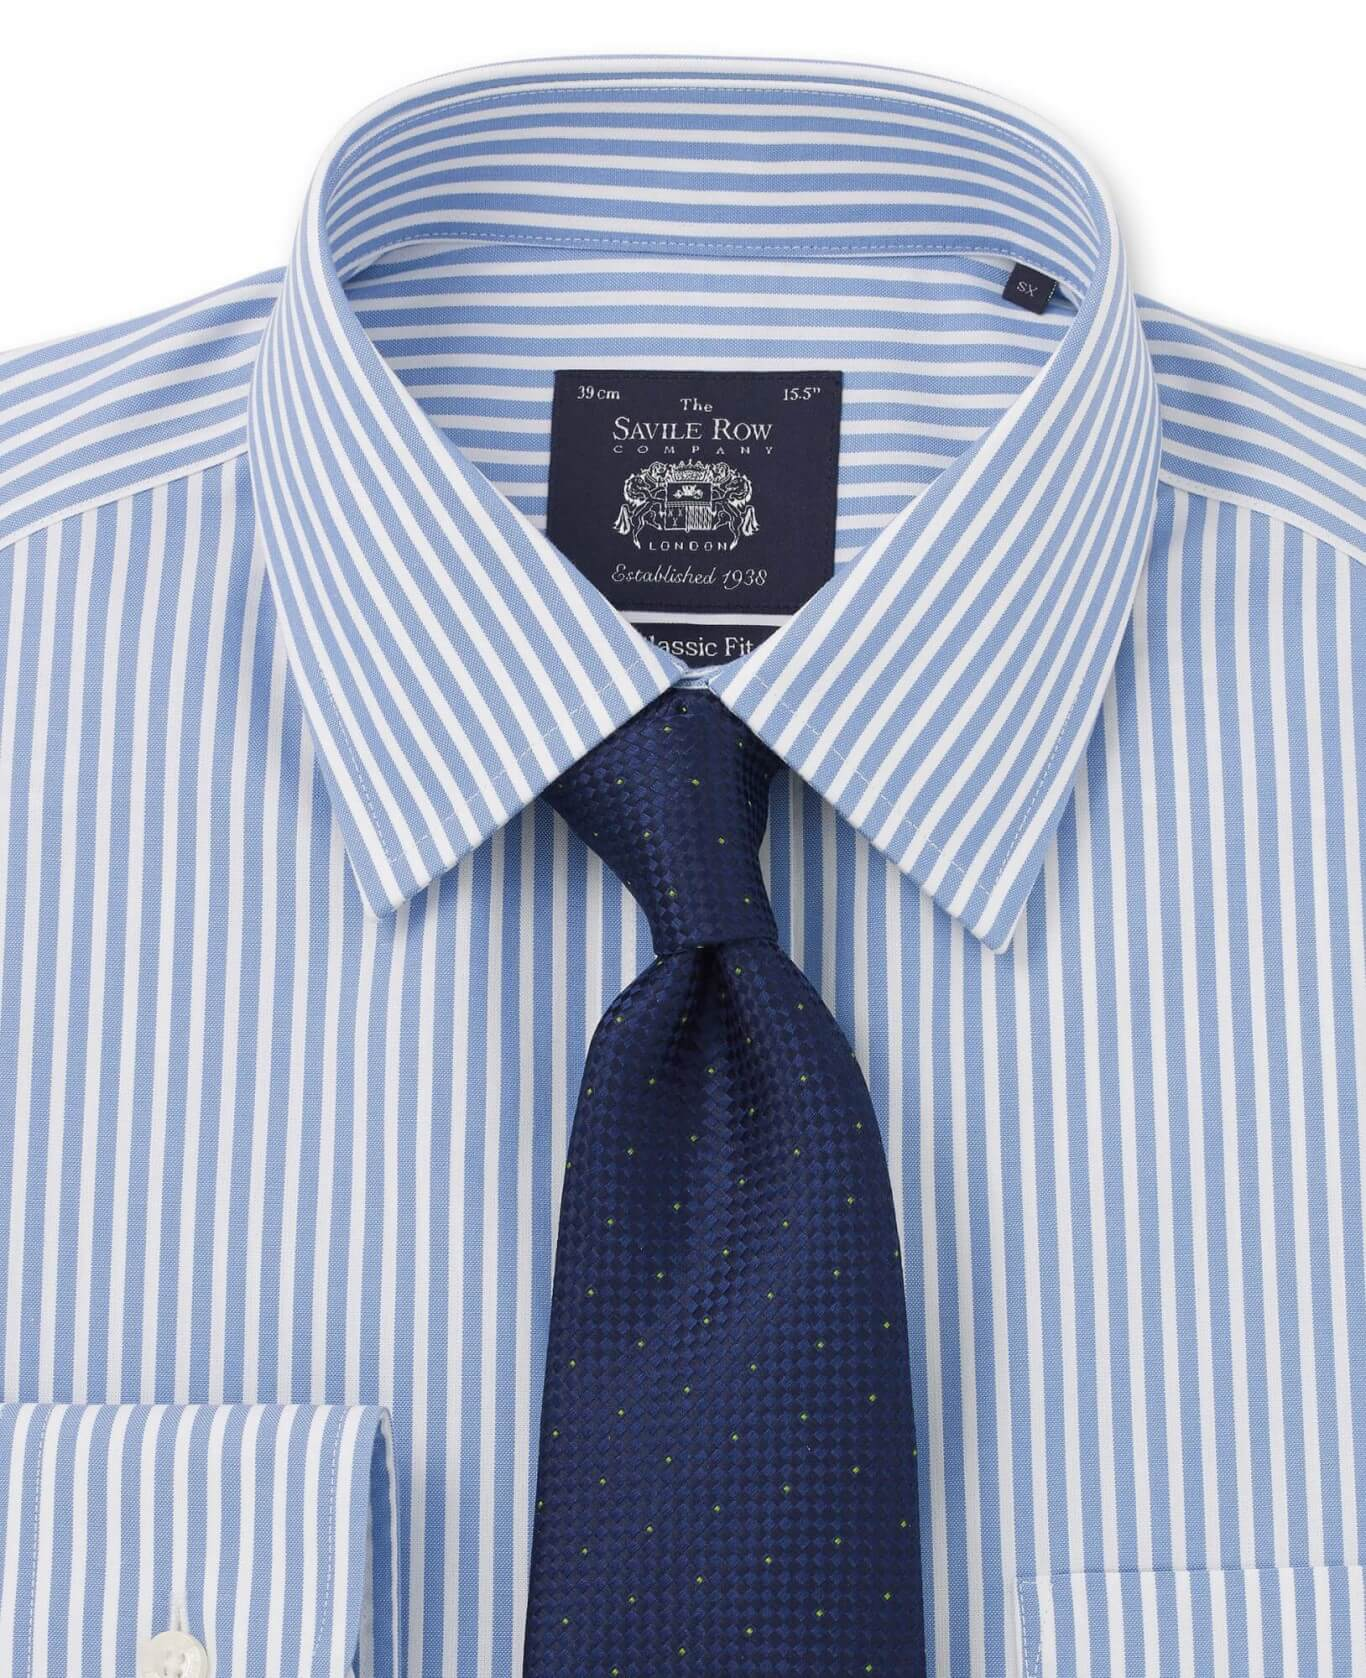 NON-IRON BLUE WHITE BENGAL STRIPE CLASSIC FIT SHIRT – DOUBLE CUFF-969BLU